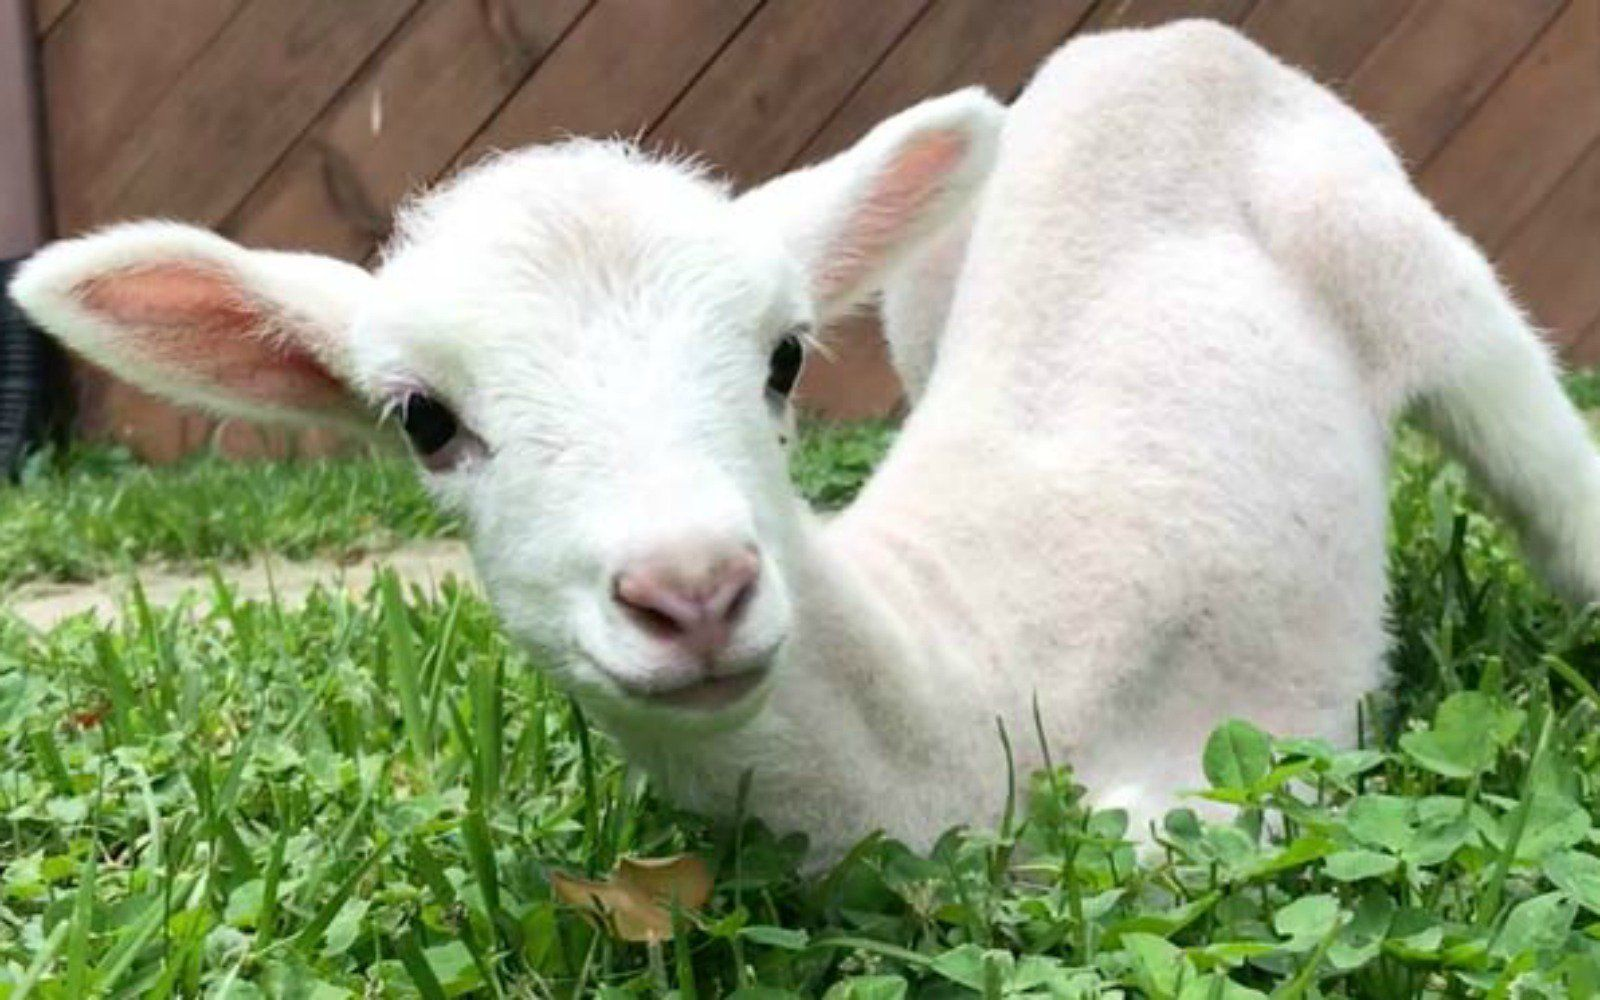 When This Sheep Farmer Met A Lamb Born Without Front Legs